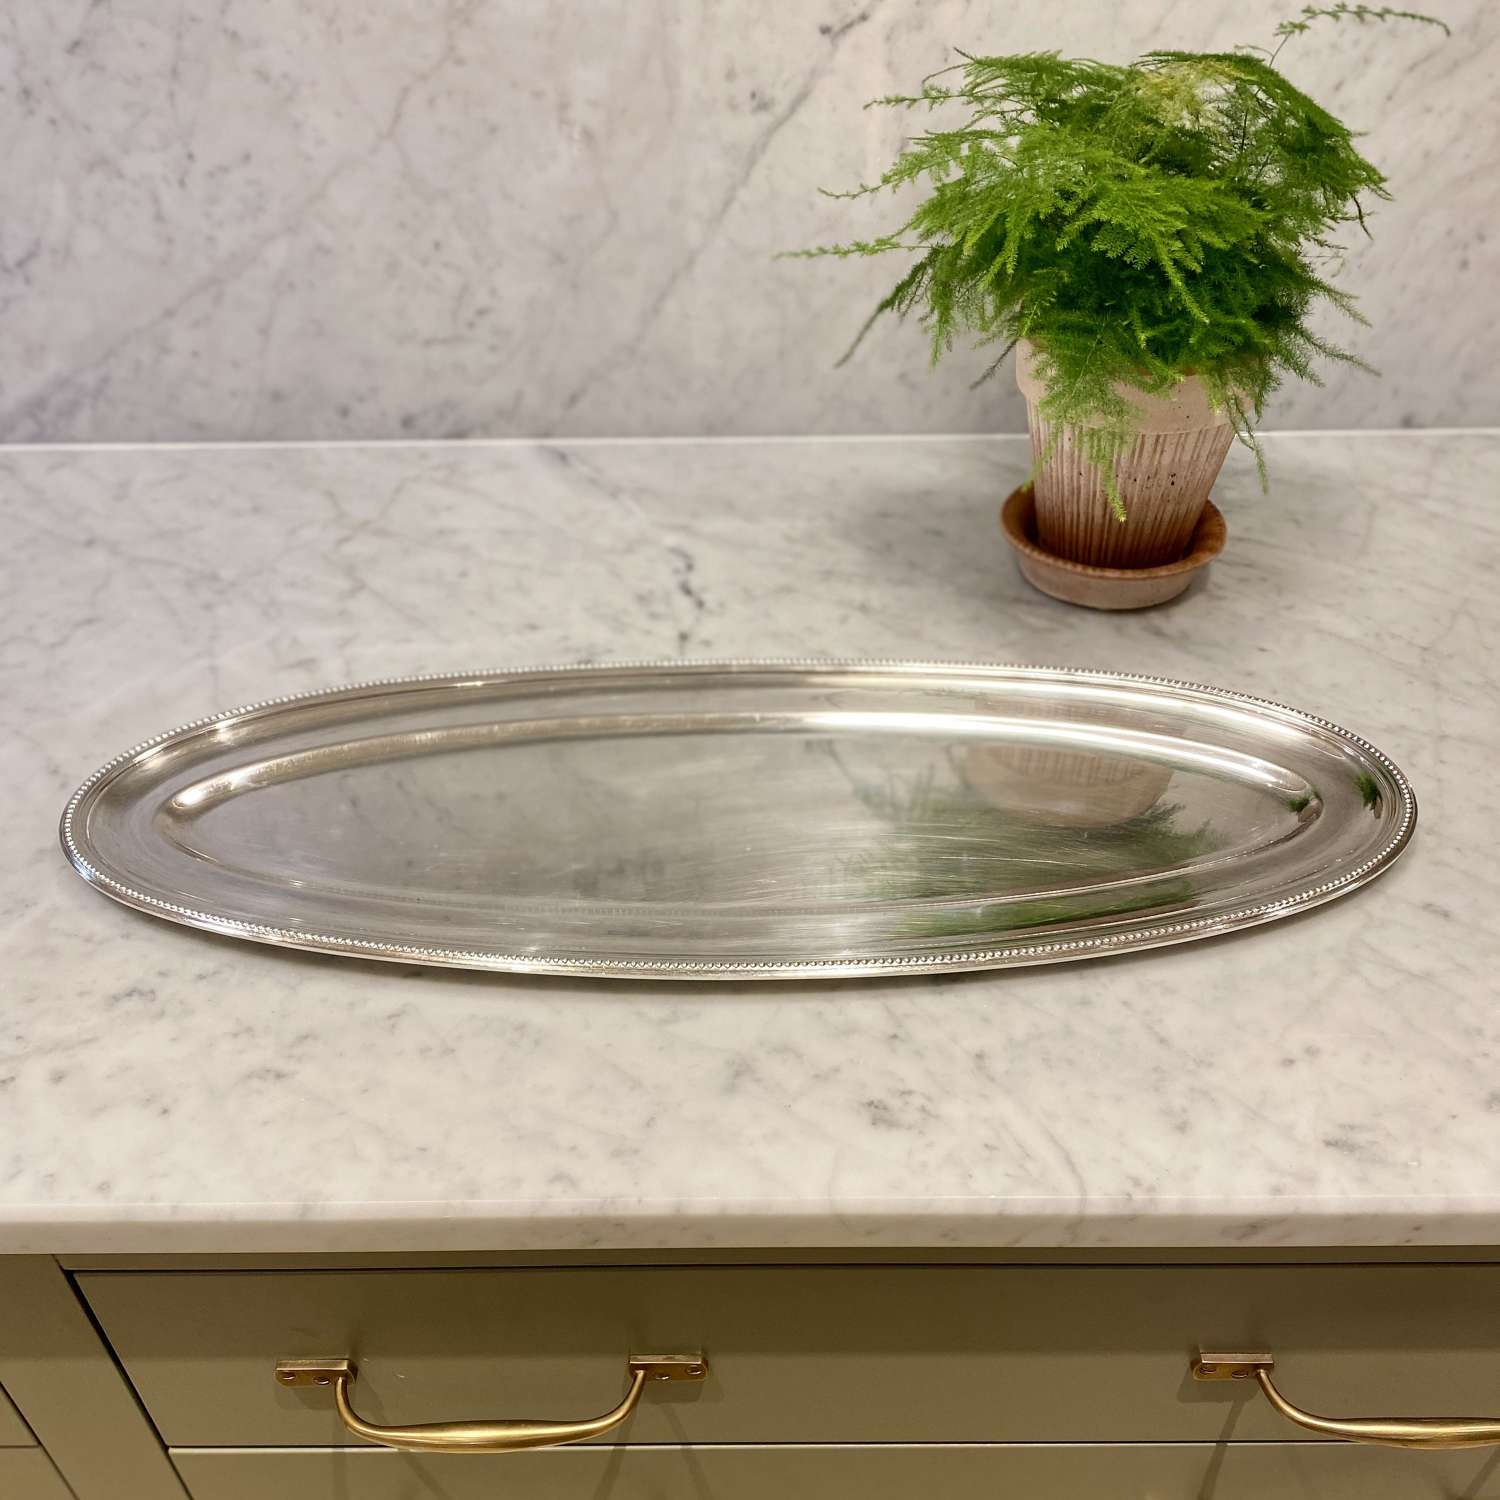 Giant Christofle oval silver plated serving platter